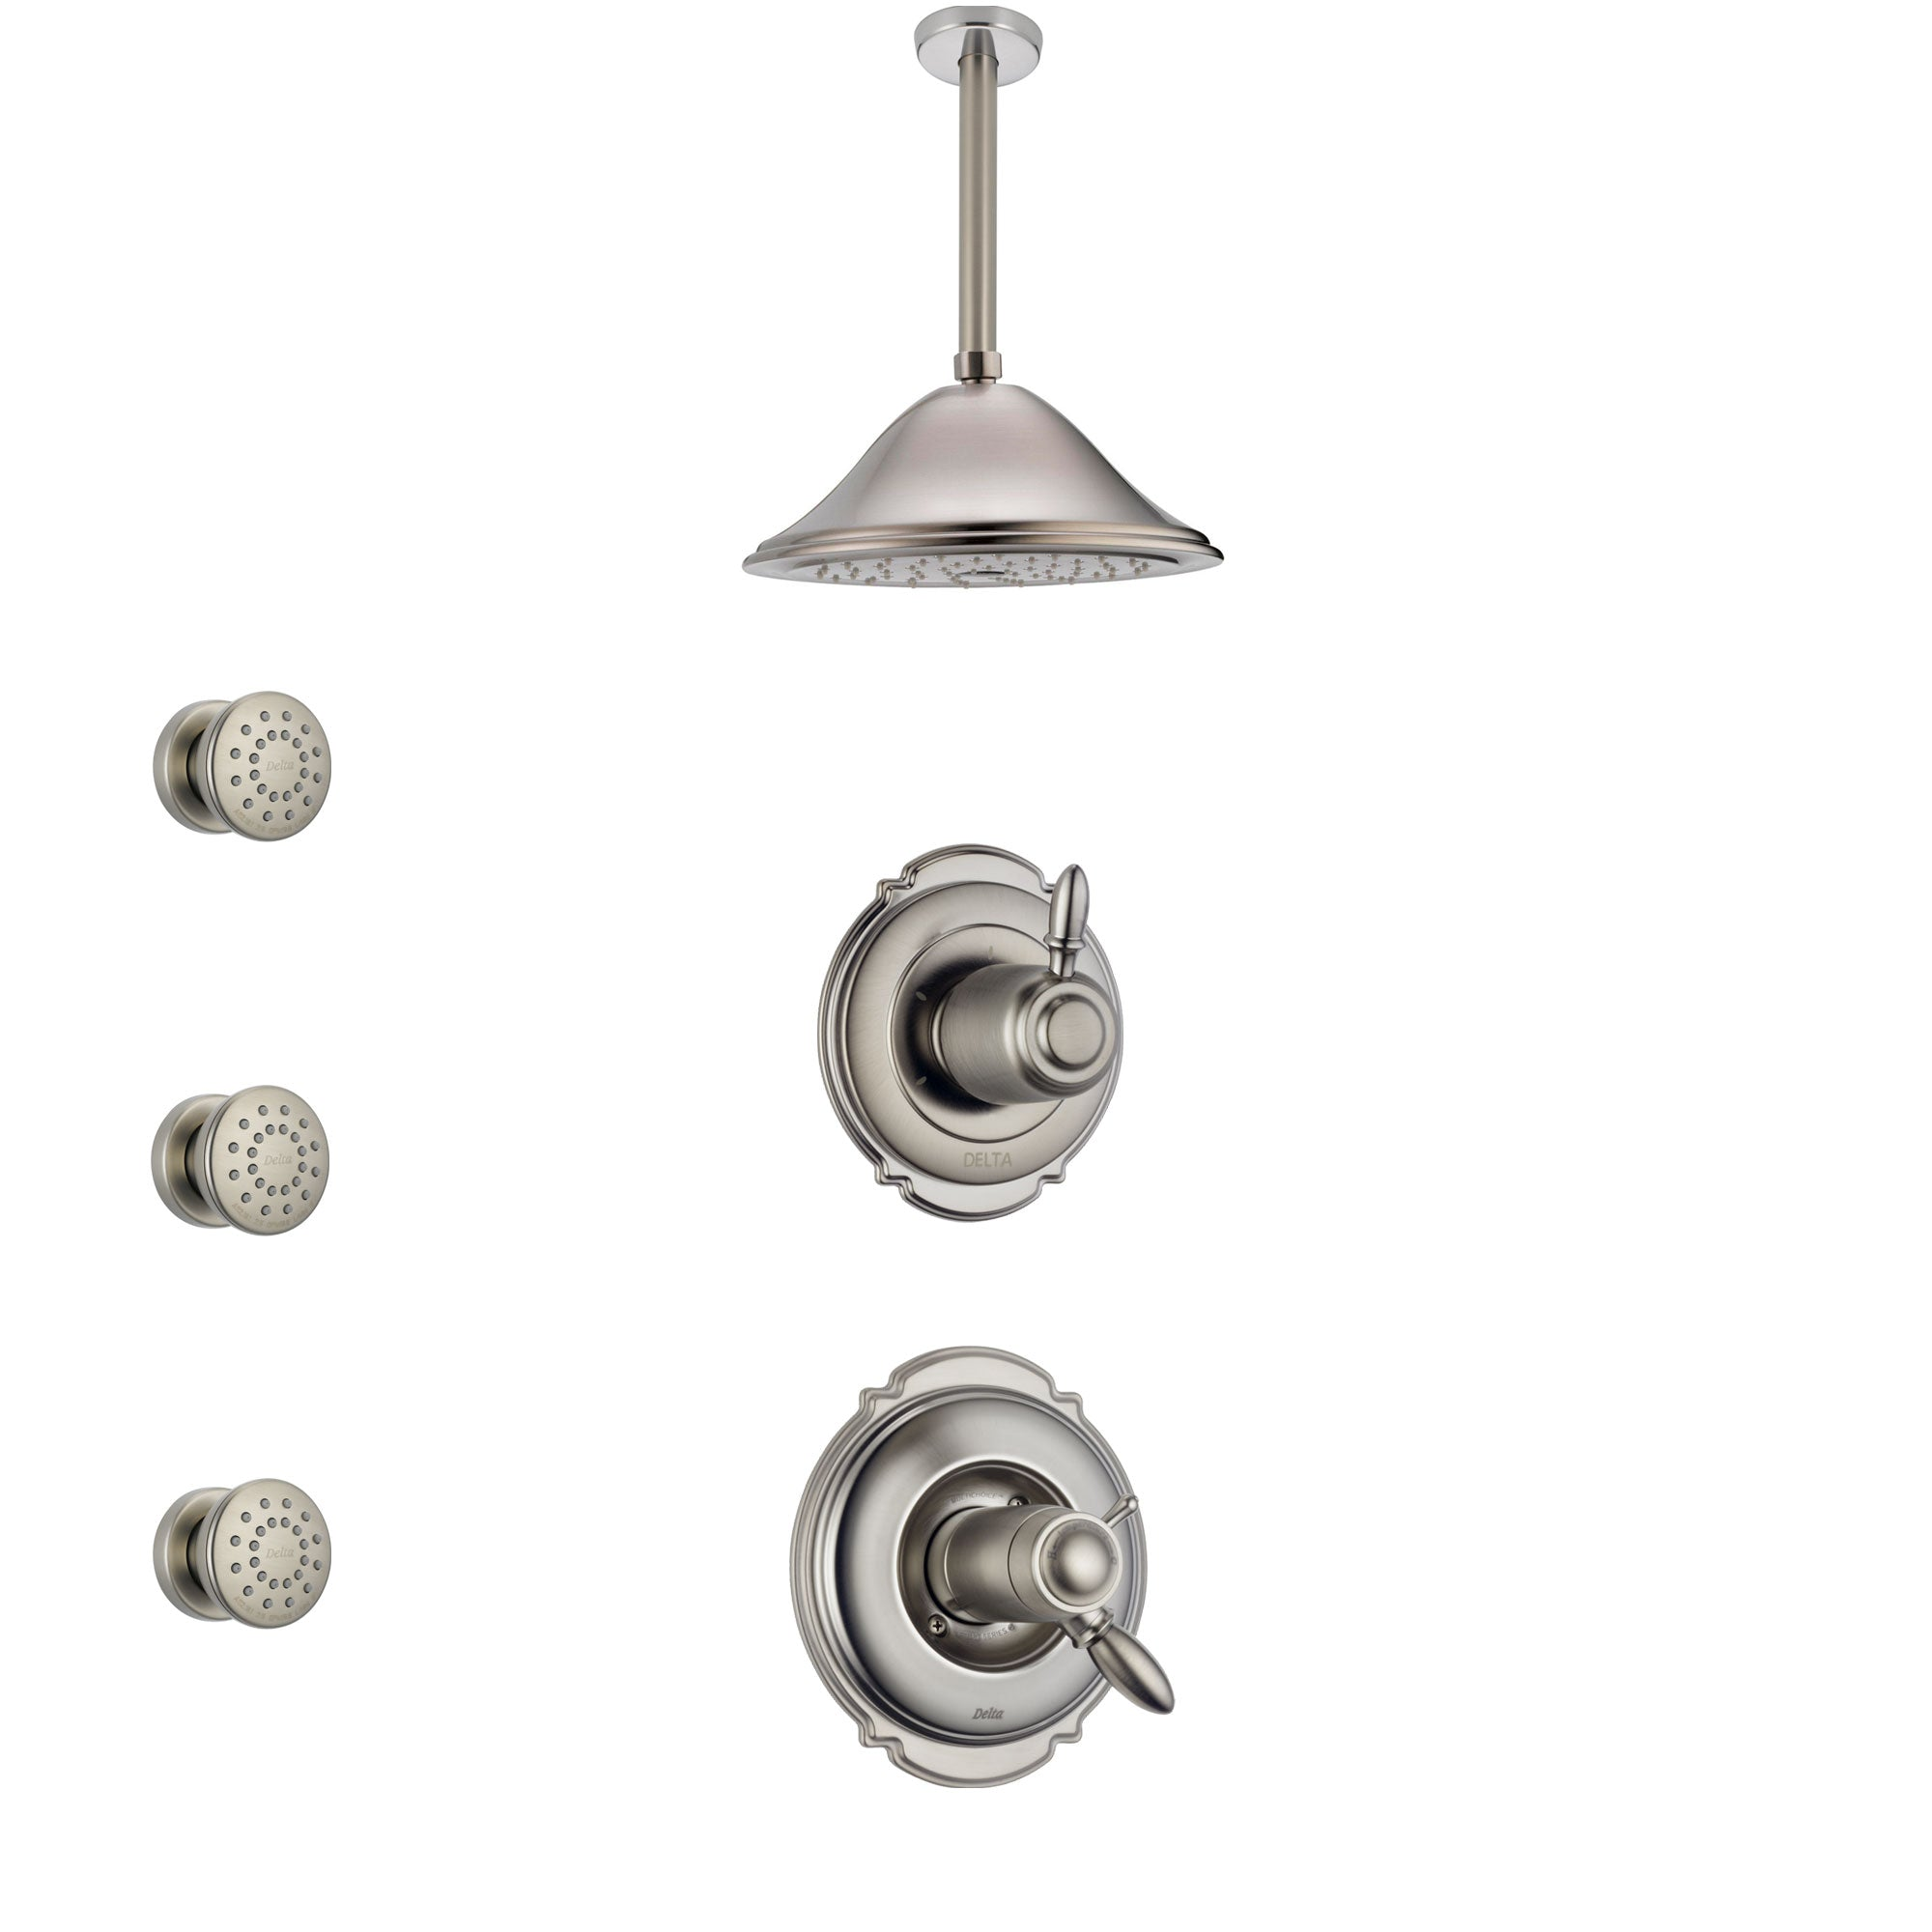 Delta Victorian Dual Thermostatic Control Stainless Steel Finish Shower System, Diverter, Ceiling Mount Showerhead, and 3 Body Sprays SS17T551SS3